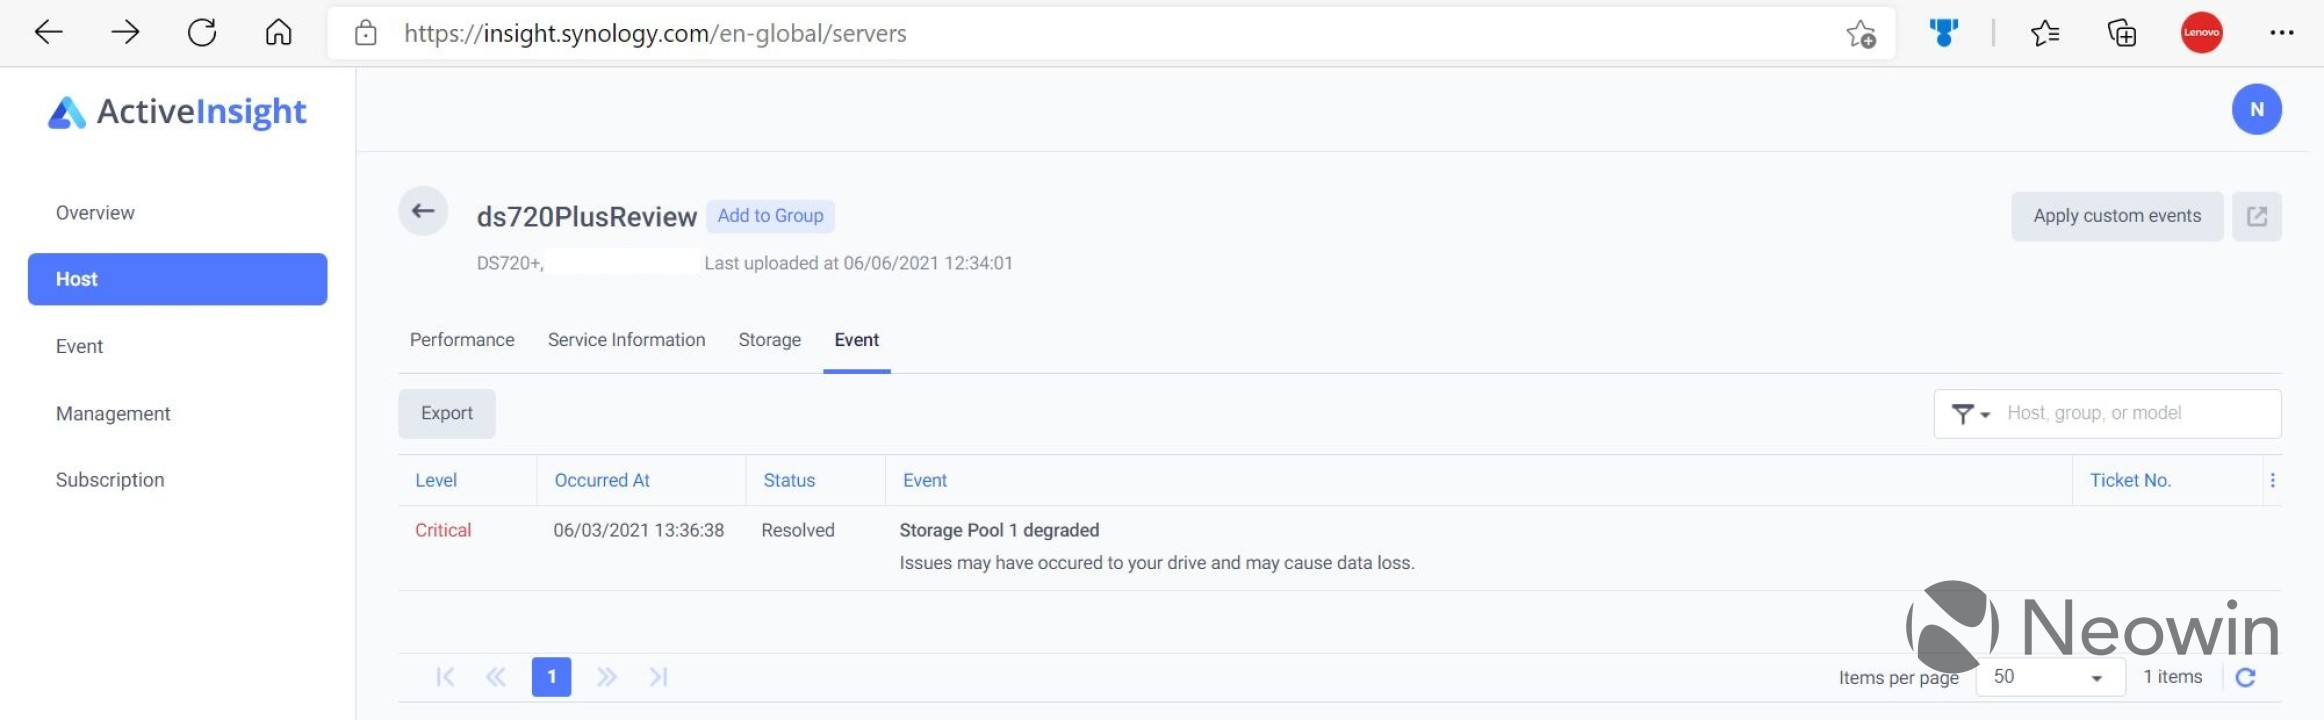 Synology Active Insight event view of a host